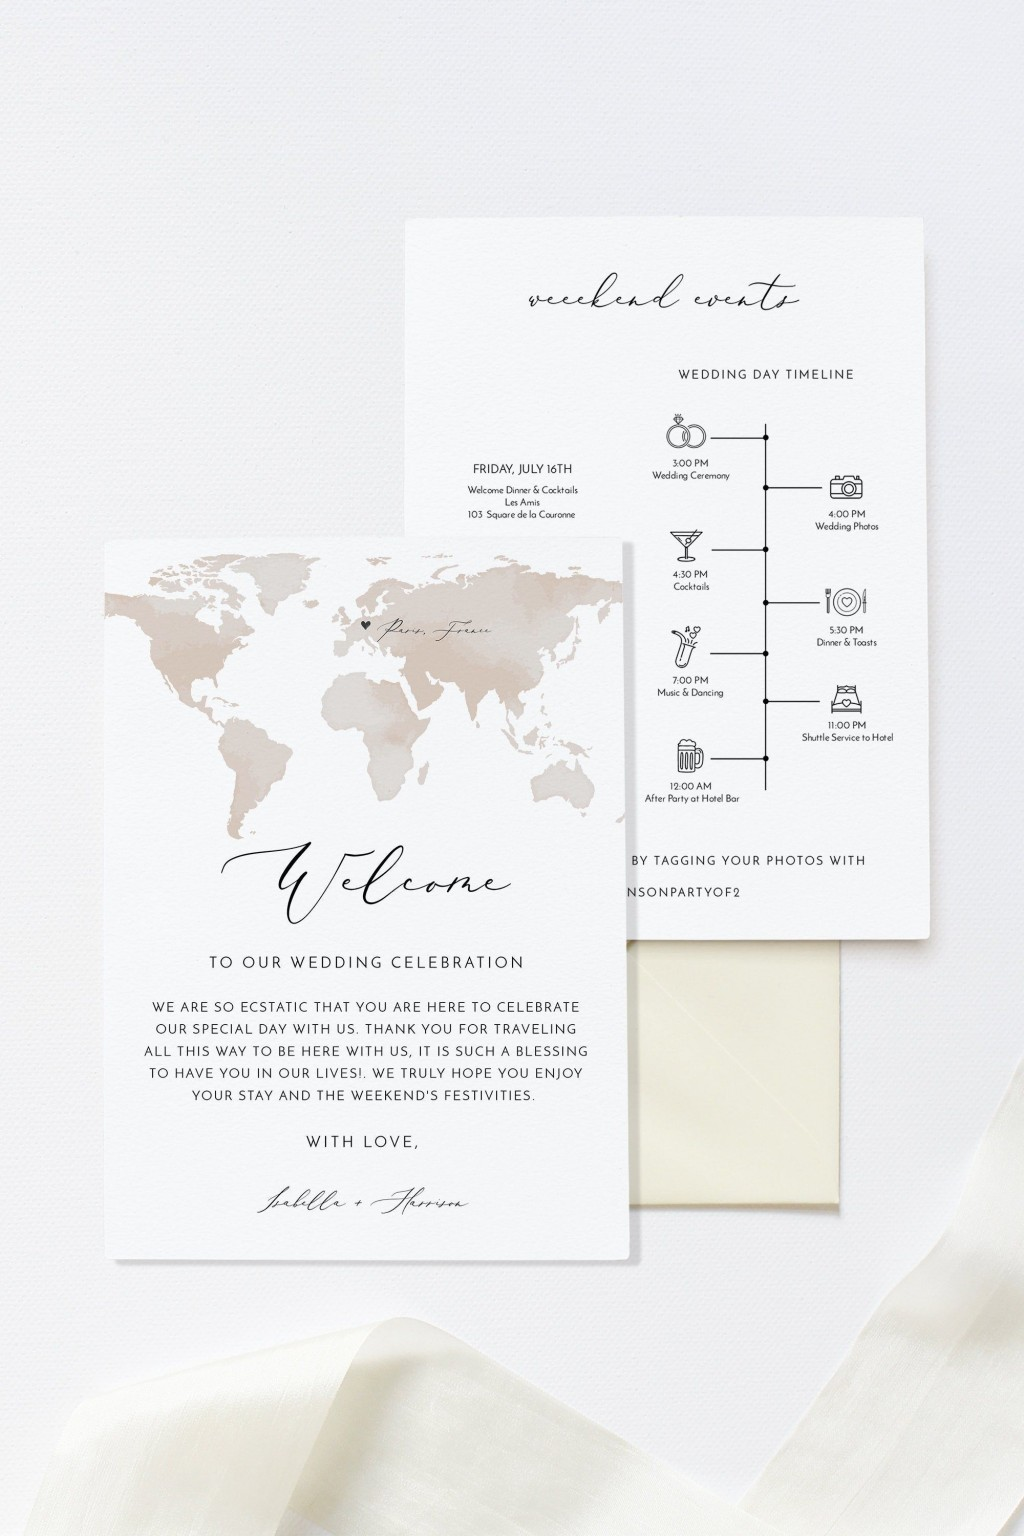 000 Staggering Destination Wedding Itinerary Template Photo  Welcome Letter And Sample FreeLarge